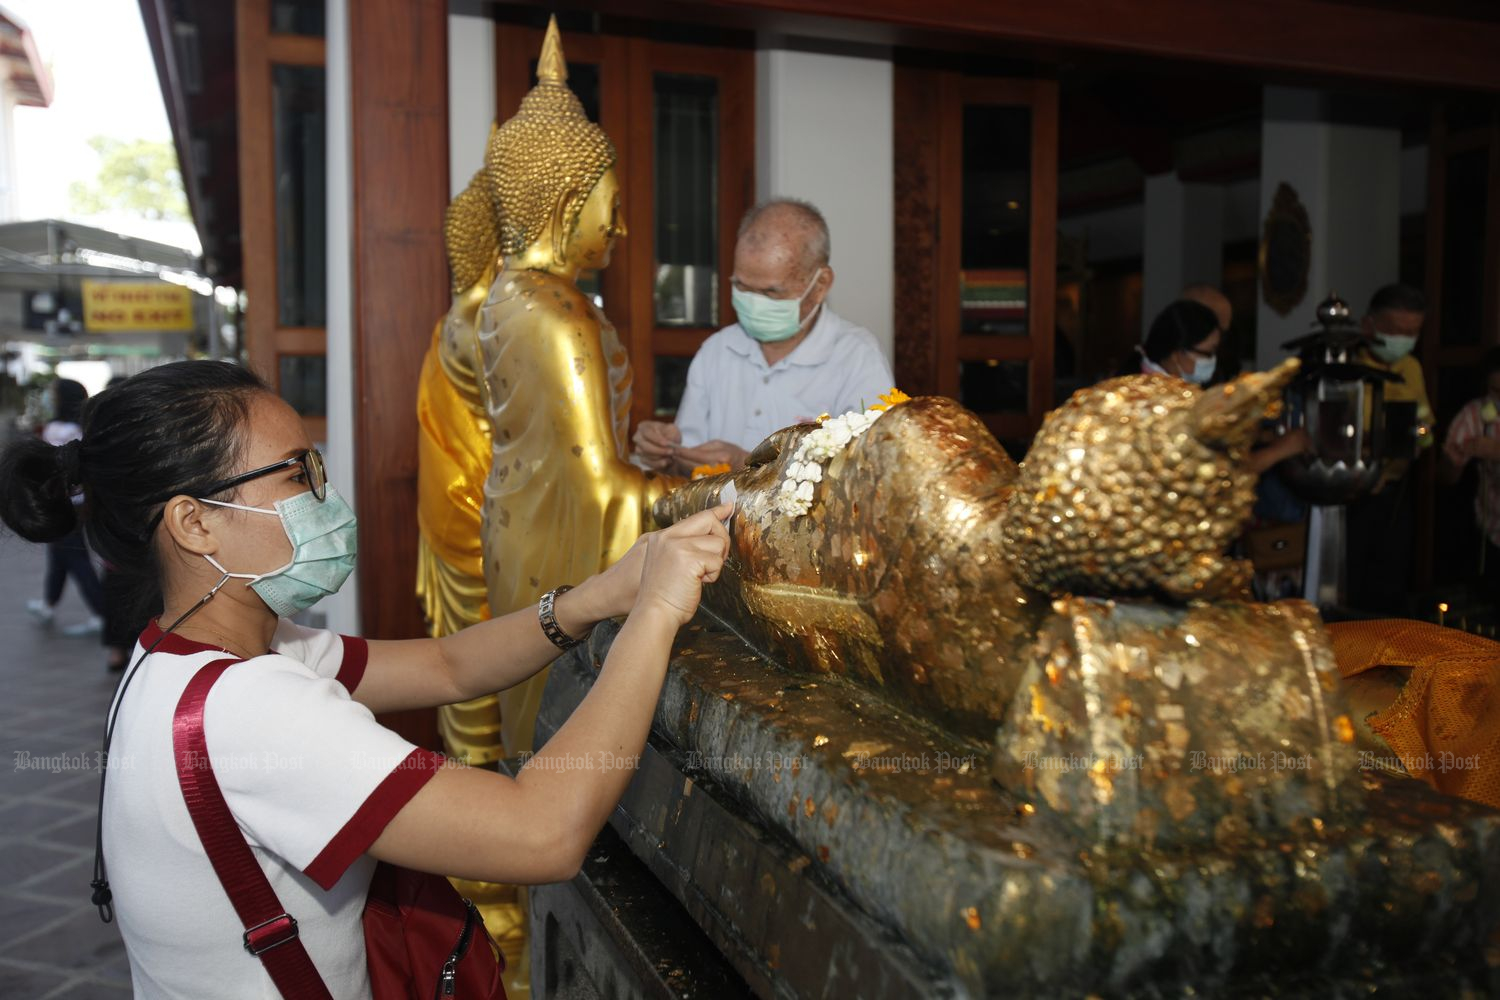 A woman places a golden leaf on a reclining Buddha image at Wat Phra Chetuphon Wimon Mangkhalaram (Wat Pho) in Bangkok on Friday. (Photo by Nutthawat Wicheanbut)